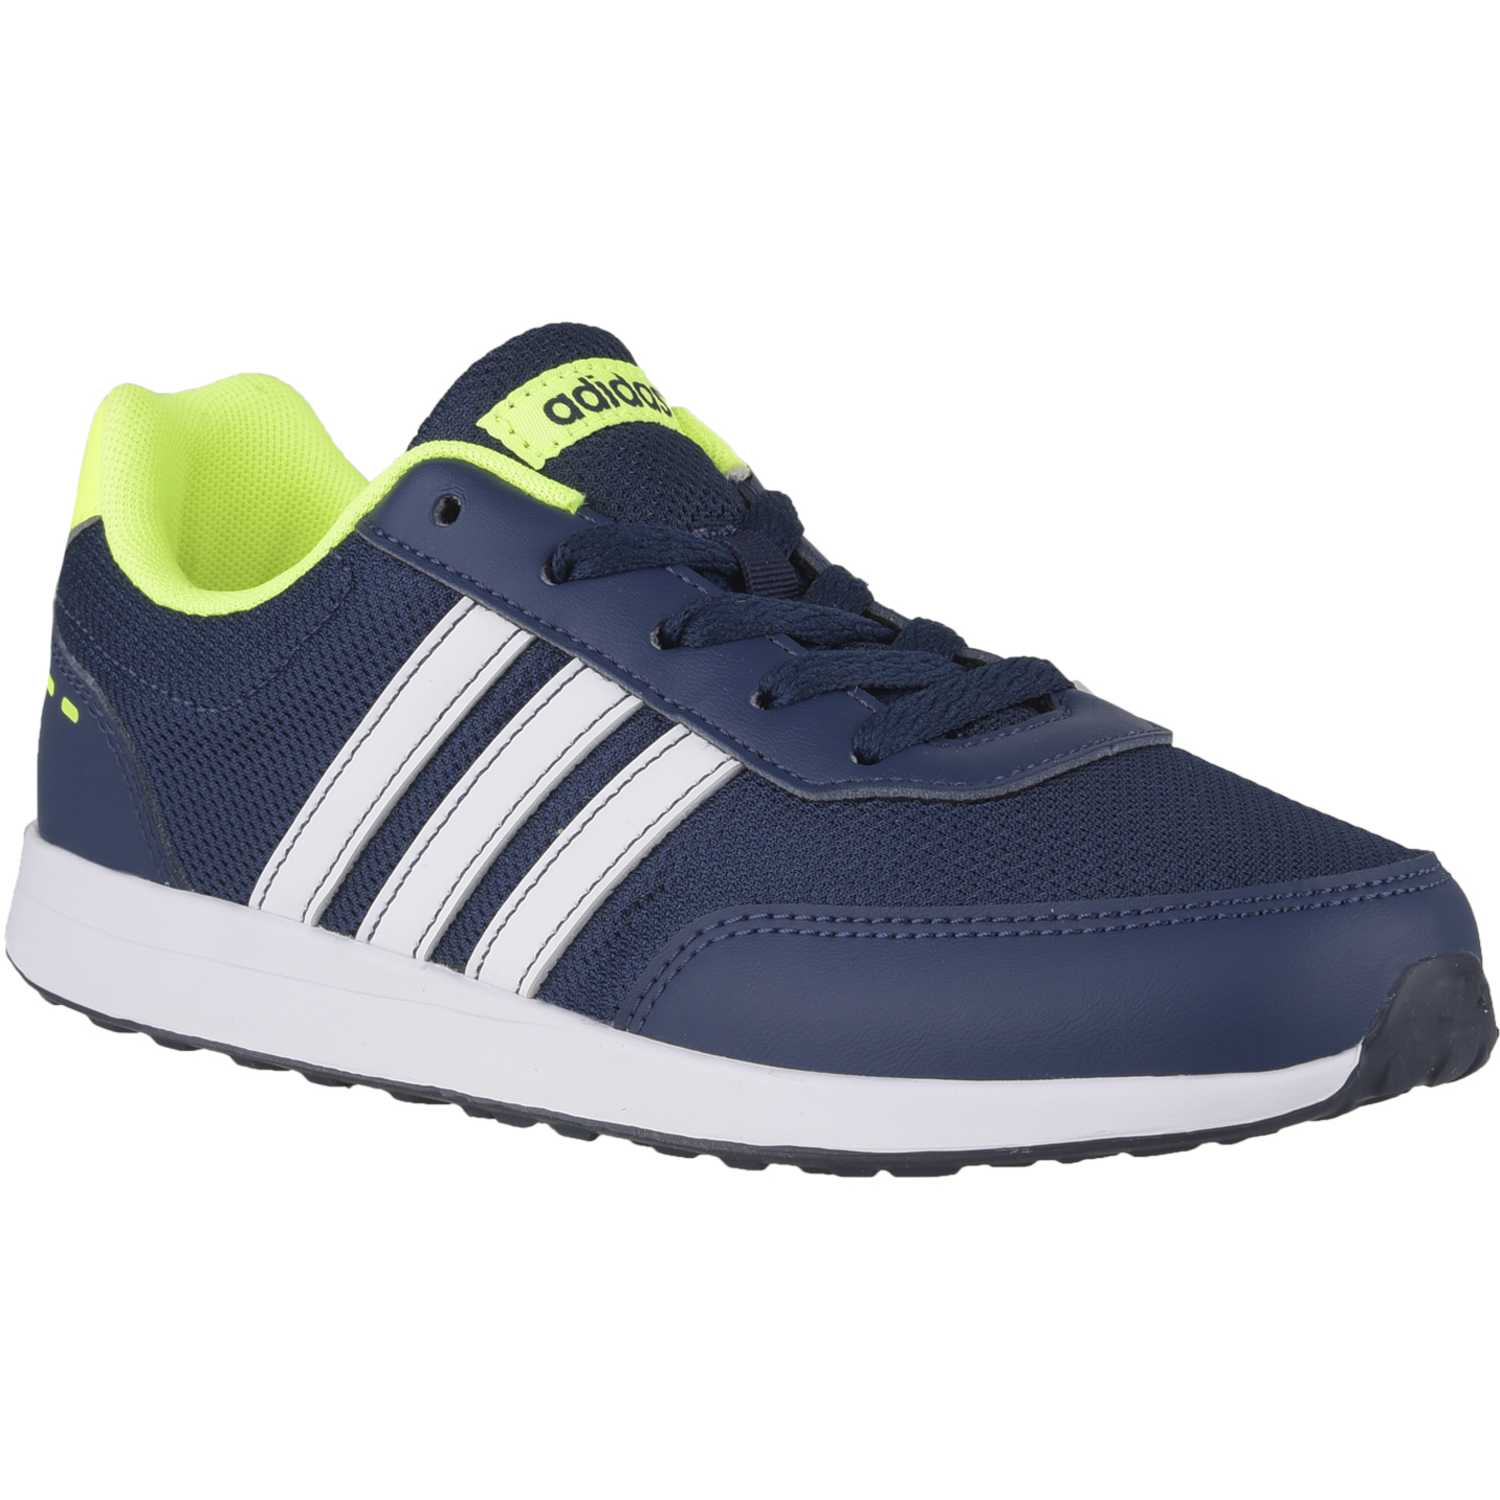 the best attitude 26efc e19bf Zapatilla de Niño adidas NEO Azul  Blanco vs switch 2 k